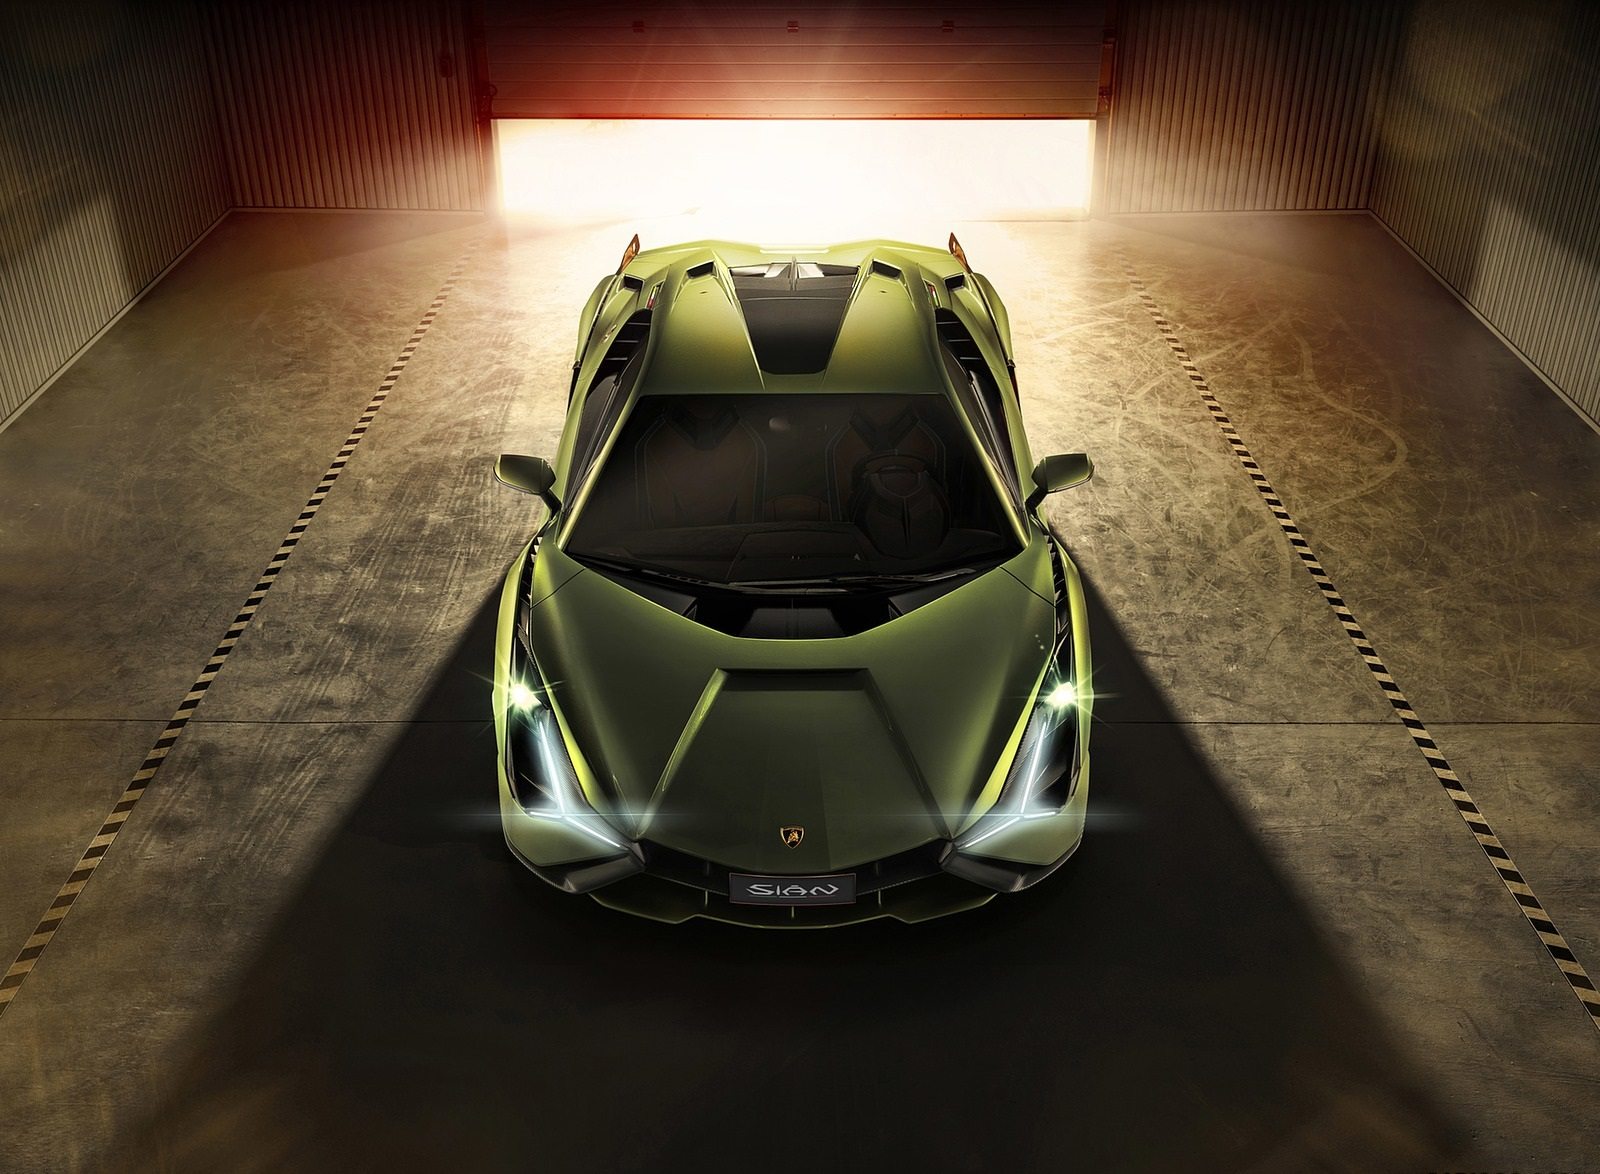 2020 Lamborghini Sián Top Wallpapers #15 of 18